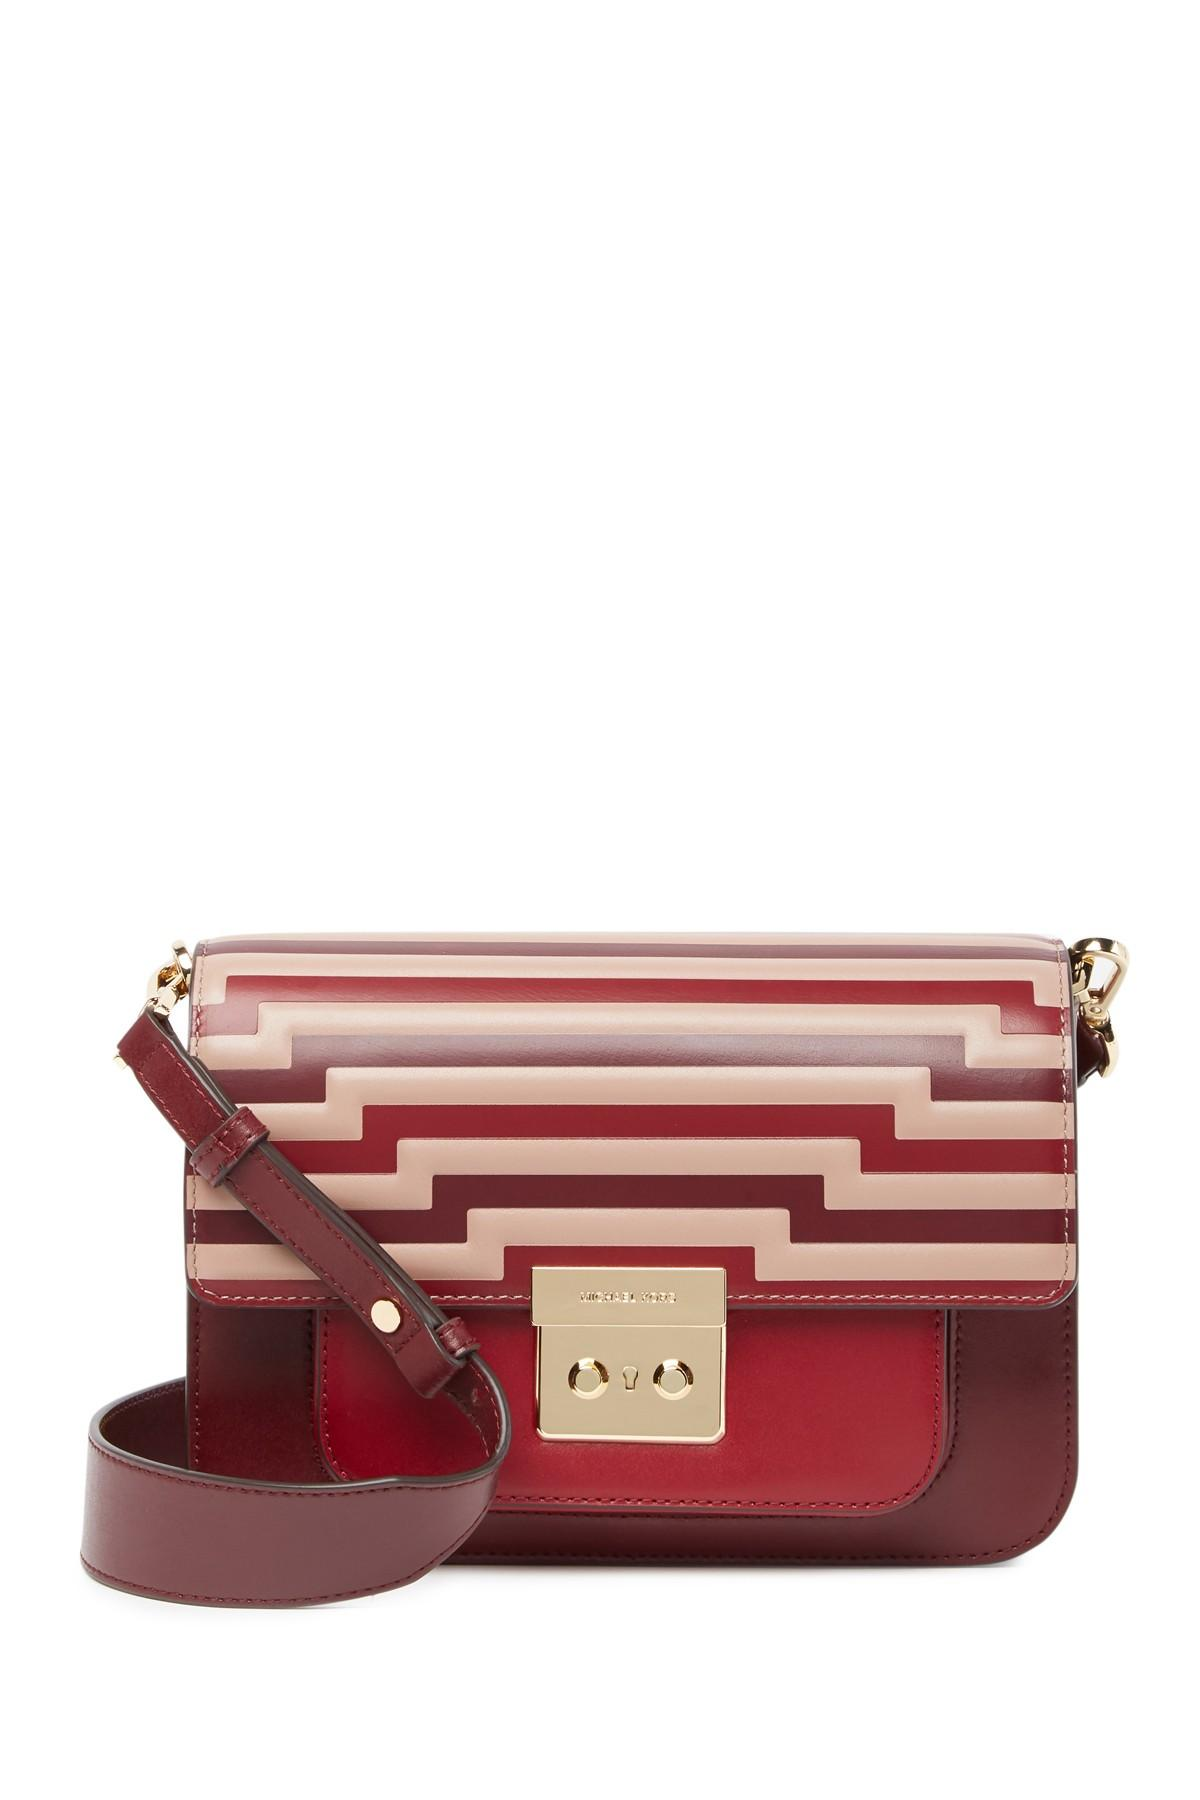 b8d5bc8d6651 MICHAEL Michael Kors Sloan Editor Leather Shoulder Bag in Red - Save ...